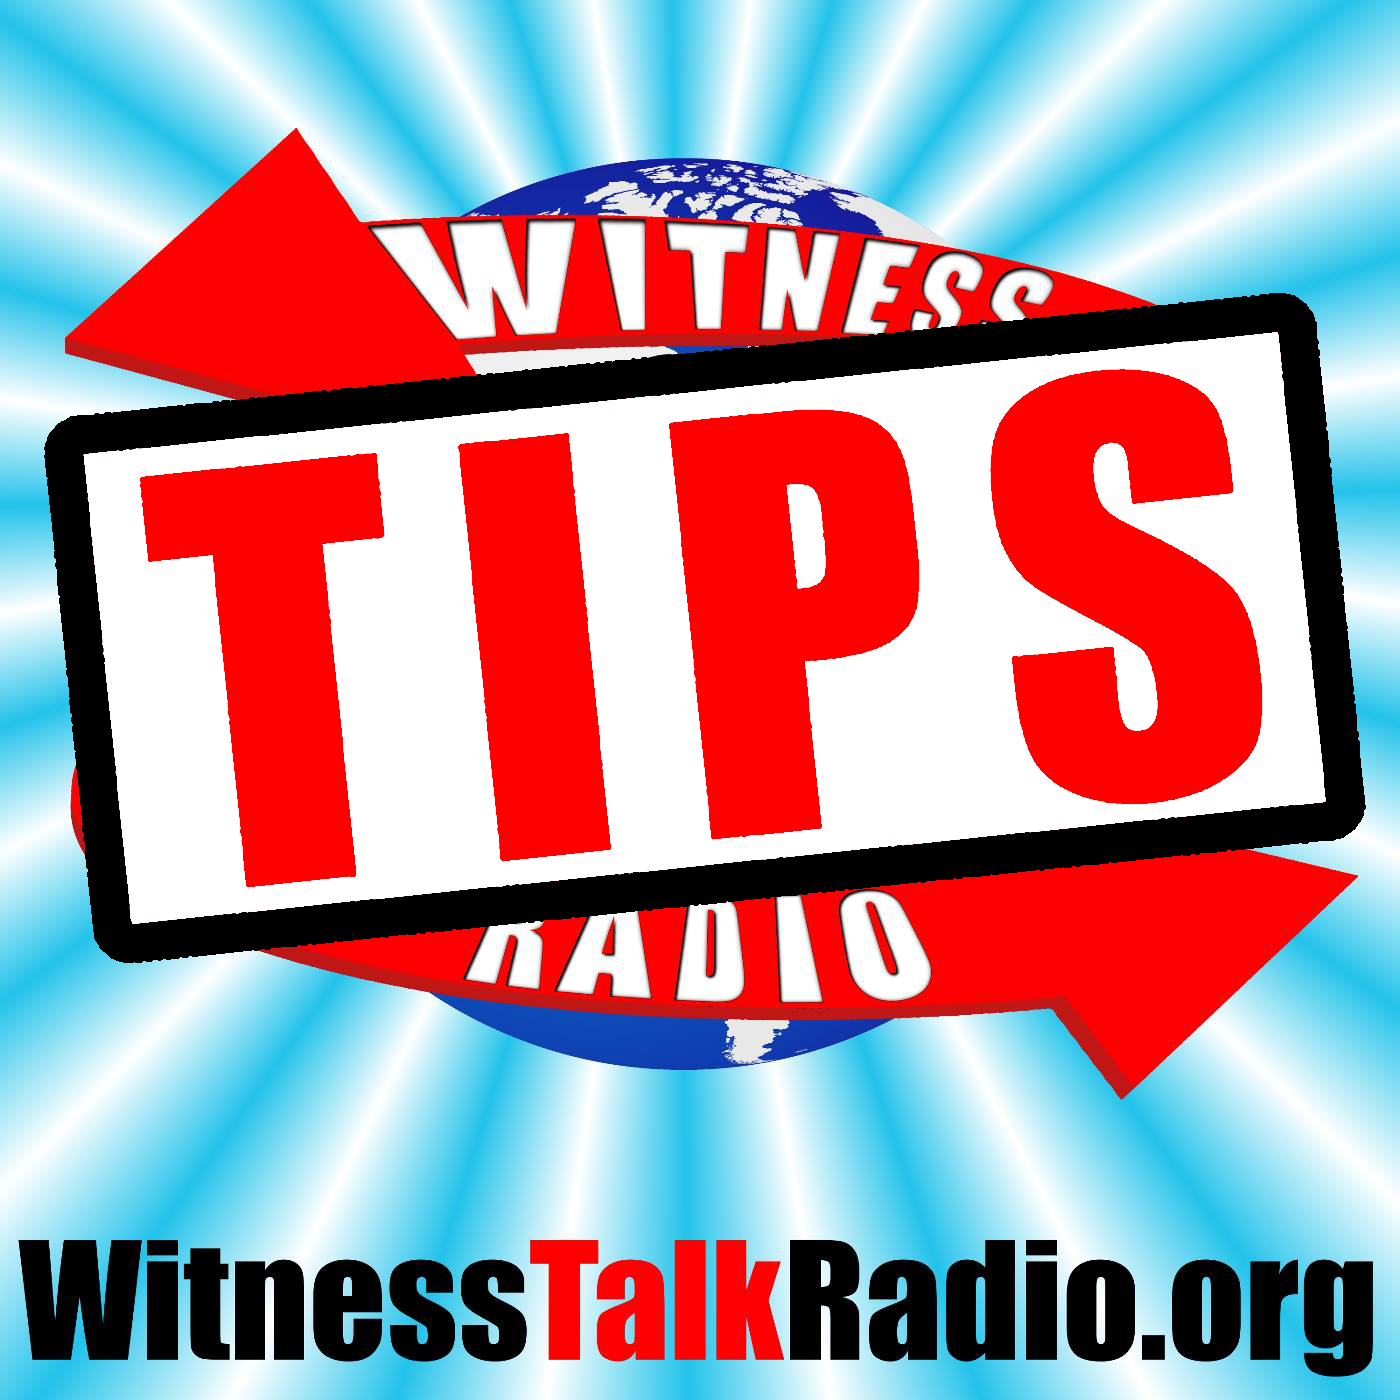 Daily Witnessing Tips from Witness Radio